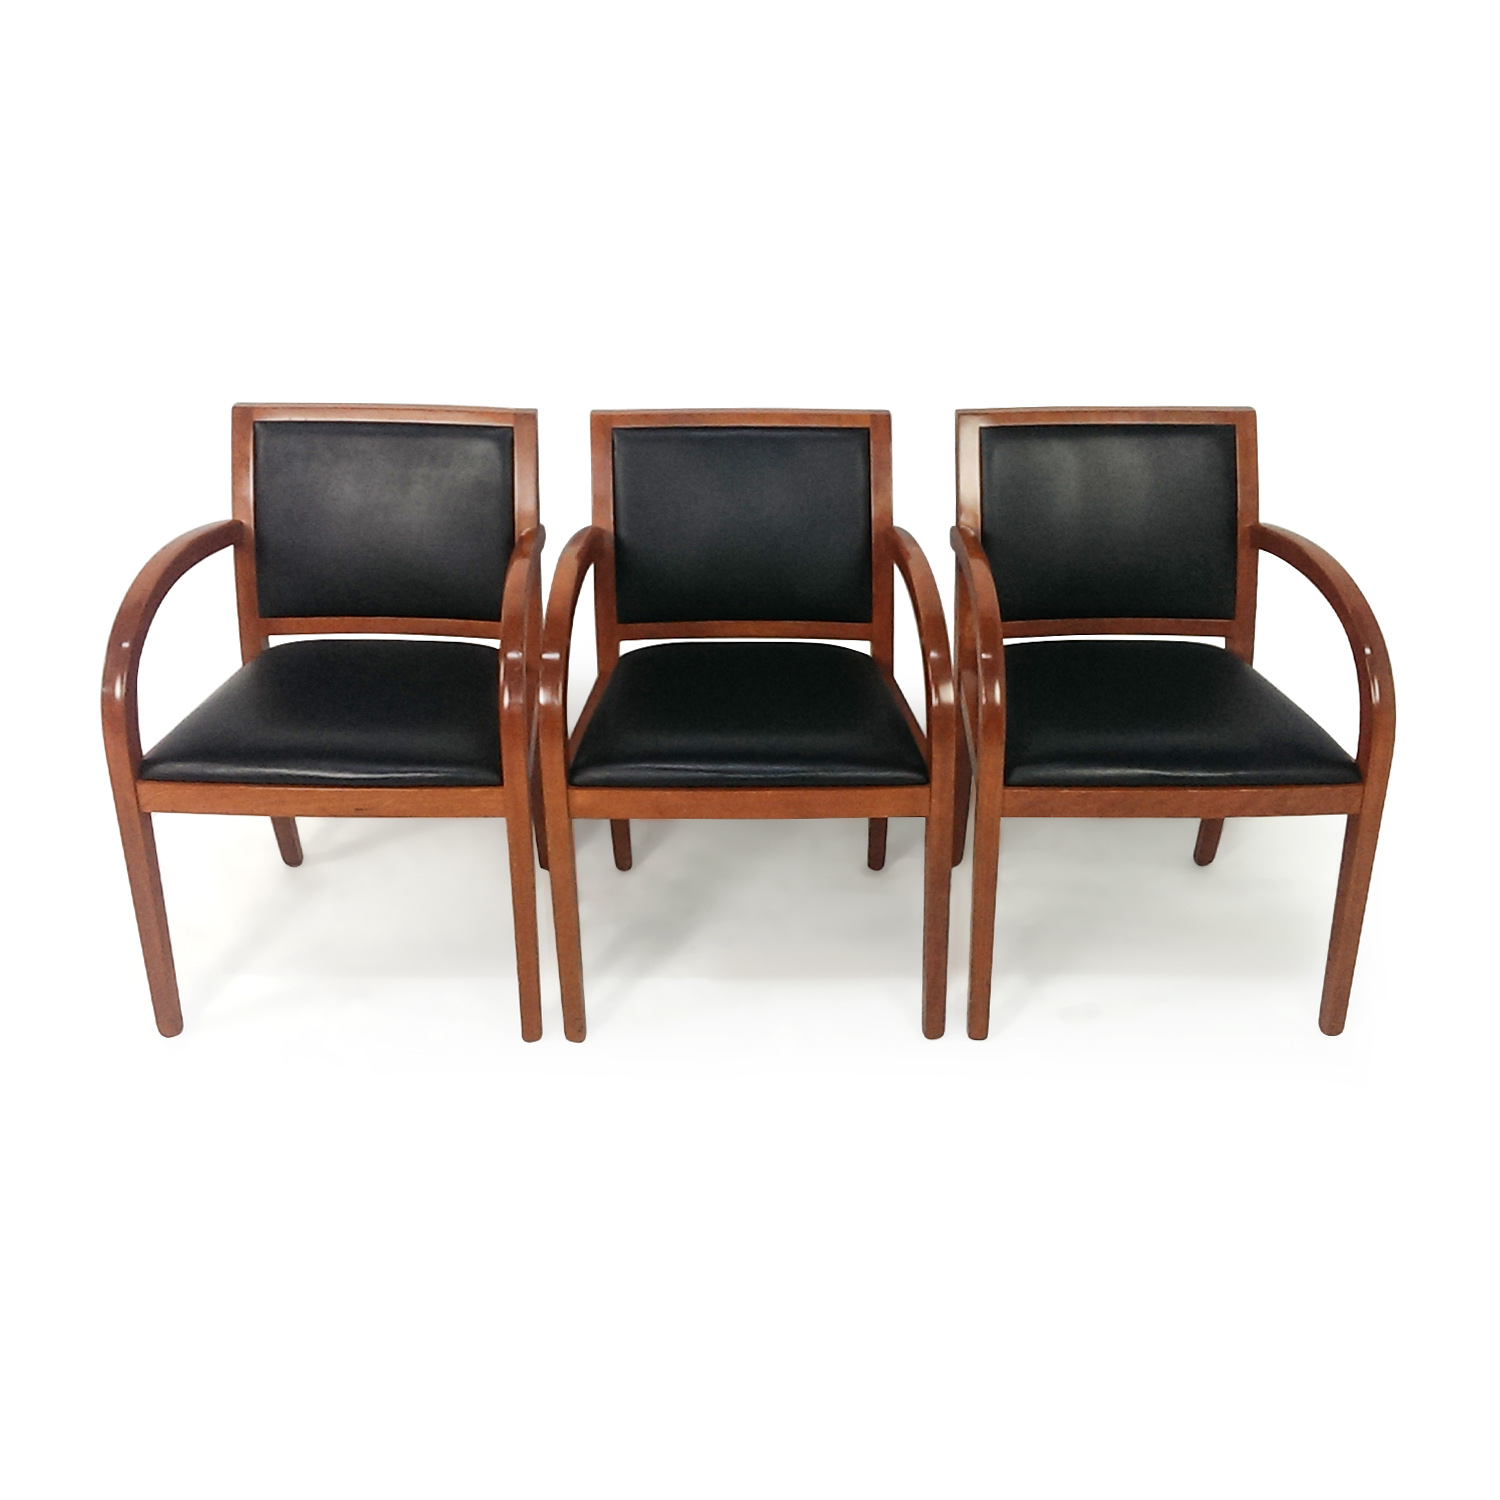 Set of 3 Accent Chairs second hand